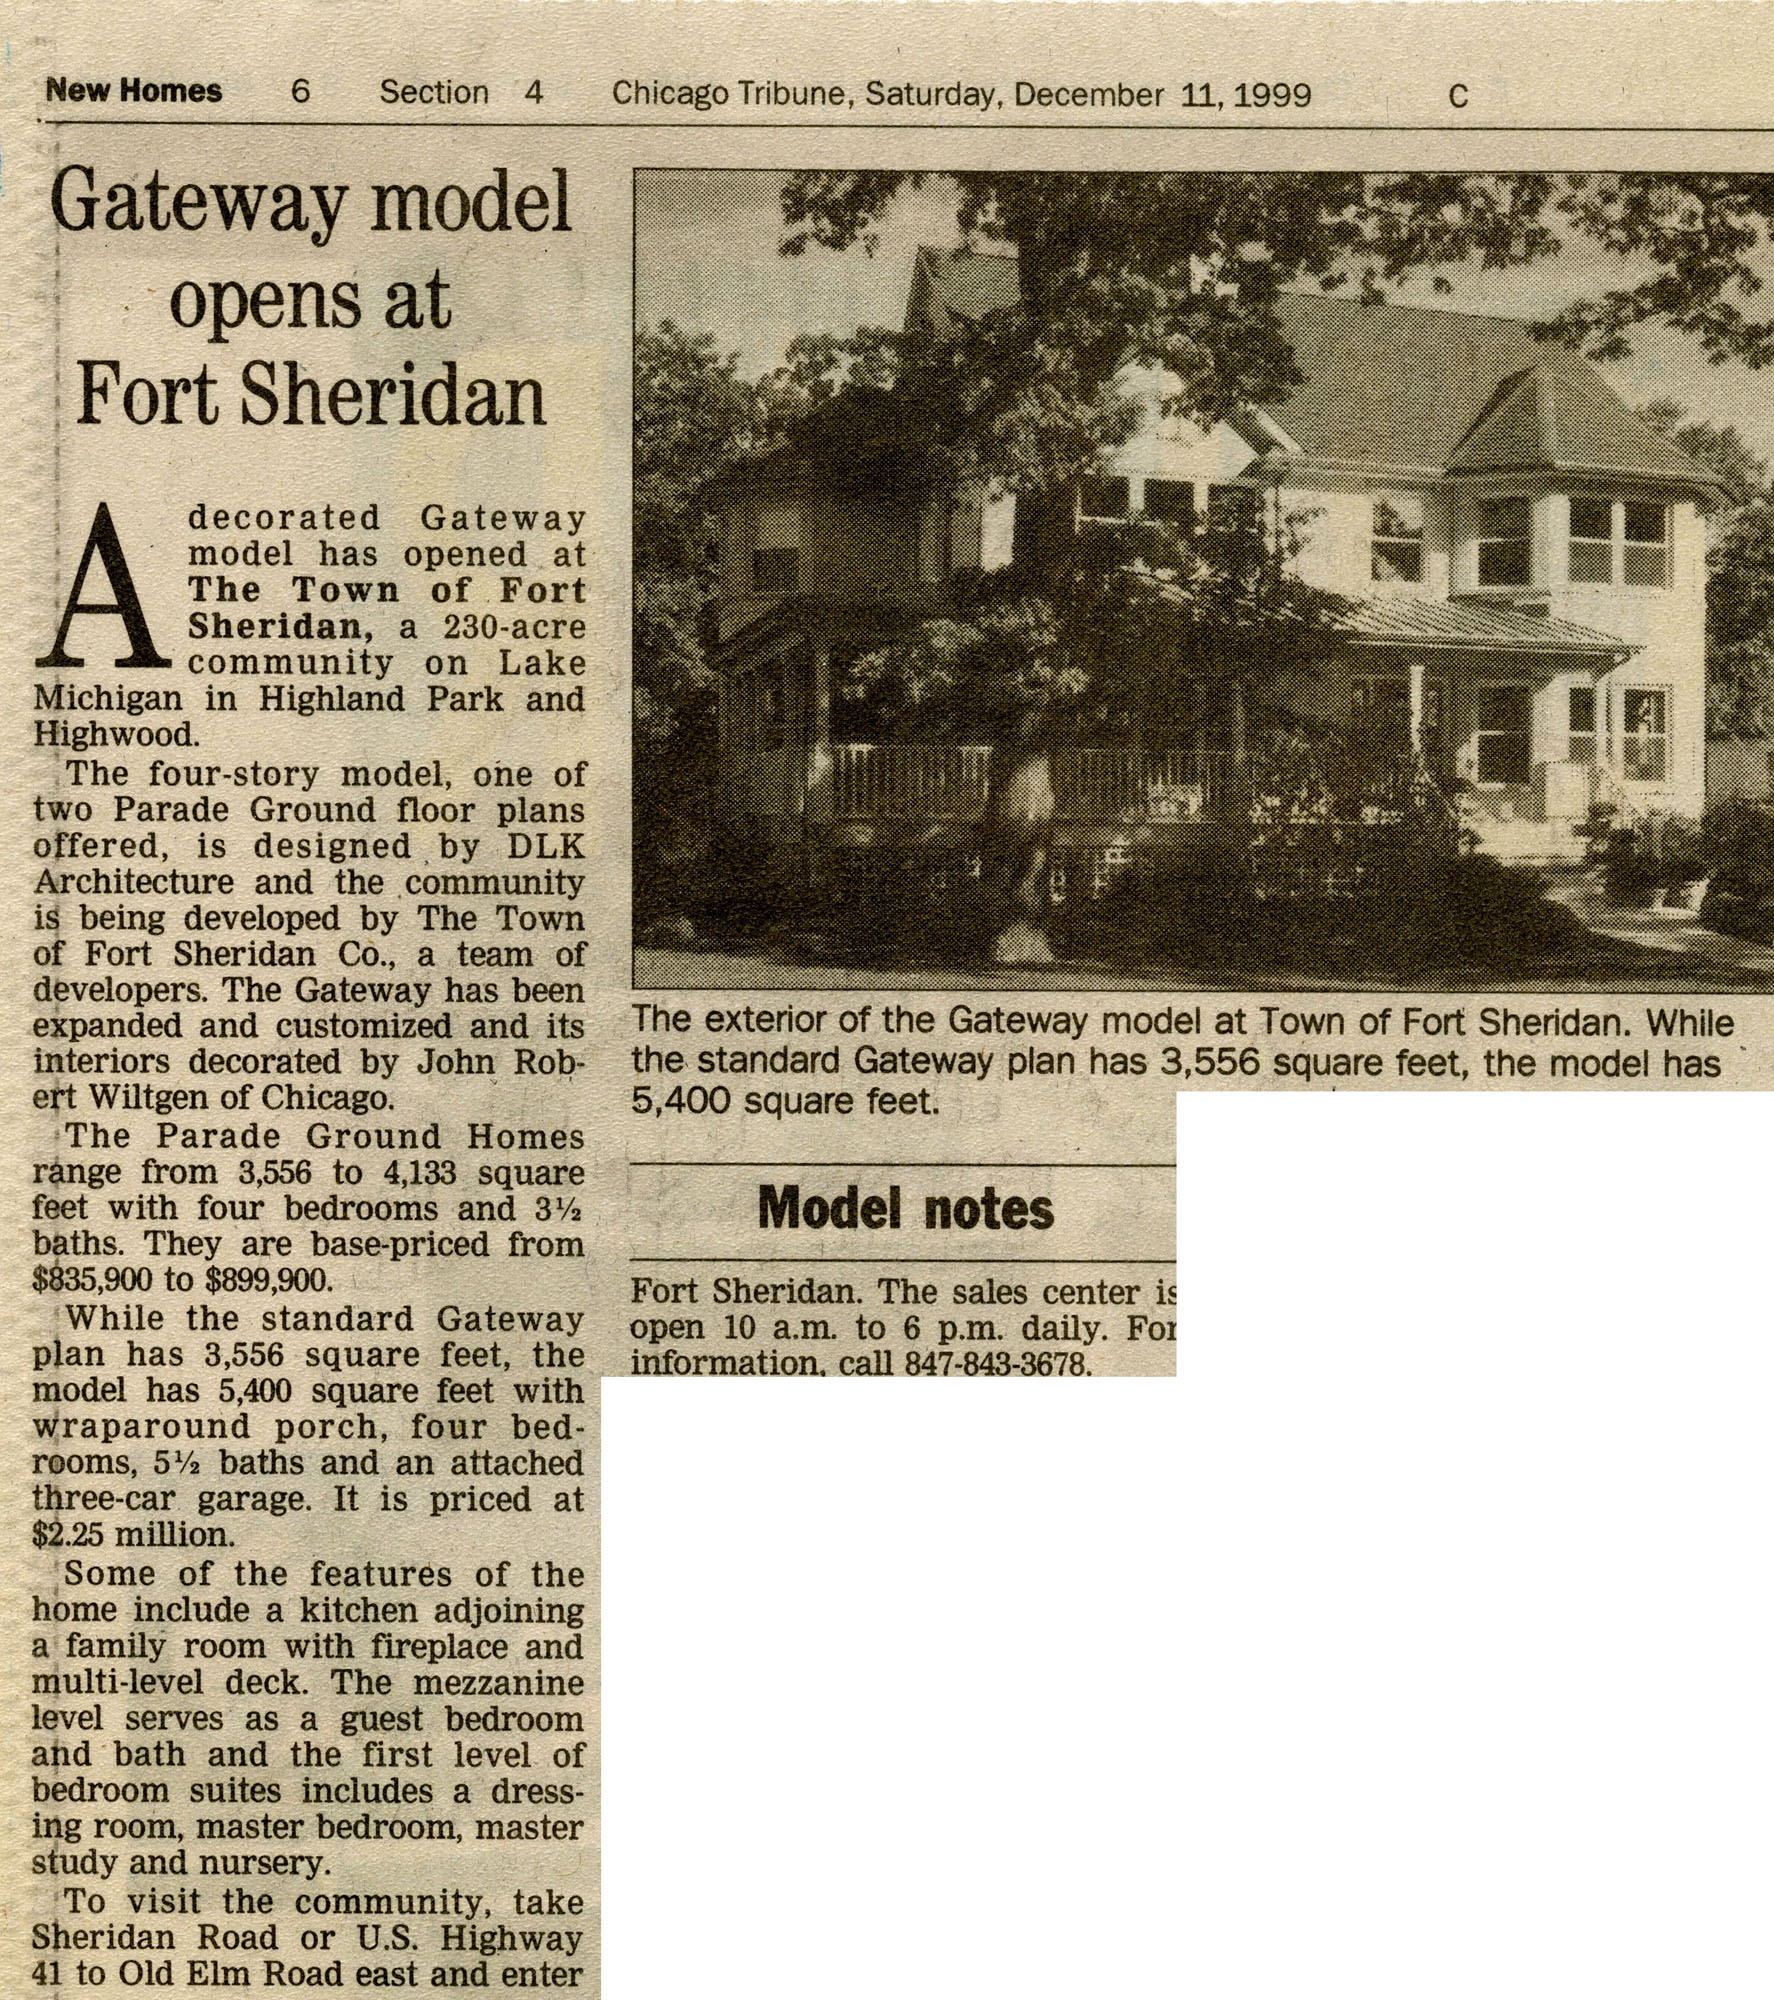 dec11,99 Chicago tribune- Gateway Model Opens at Fort Sheridan